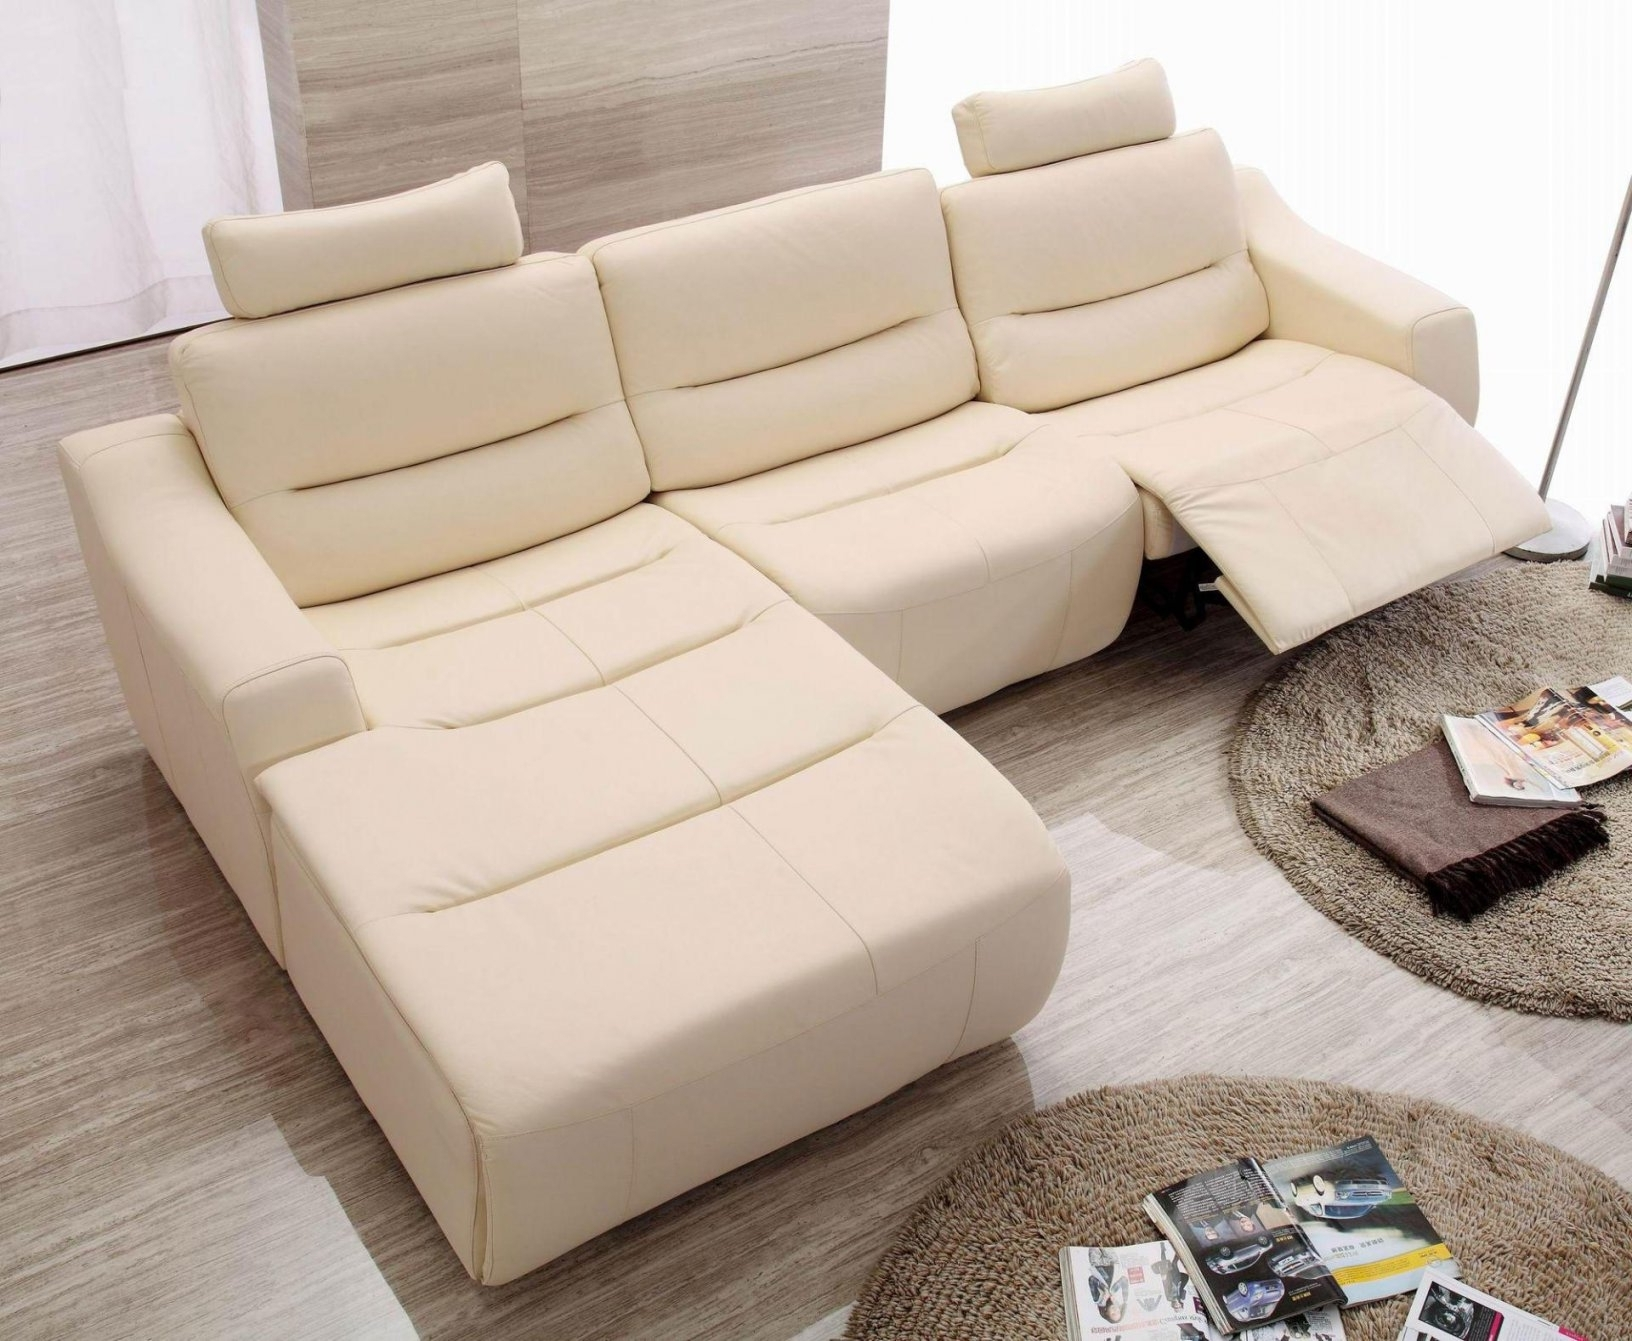 Favorite Modern Sectional Sofas For Small Spaces Regarding Sectional Sofas For Small Spaces 14 About Remodel Regarding Modern (View 11 of 20)